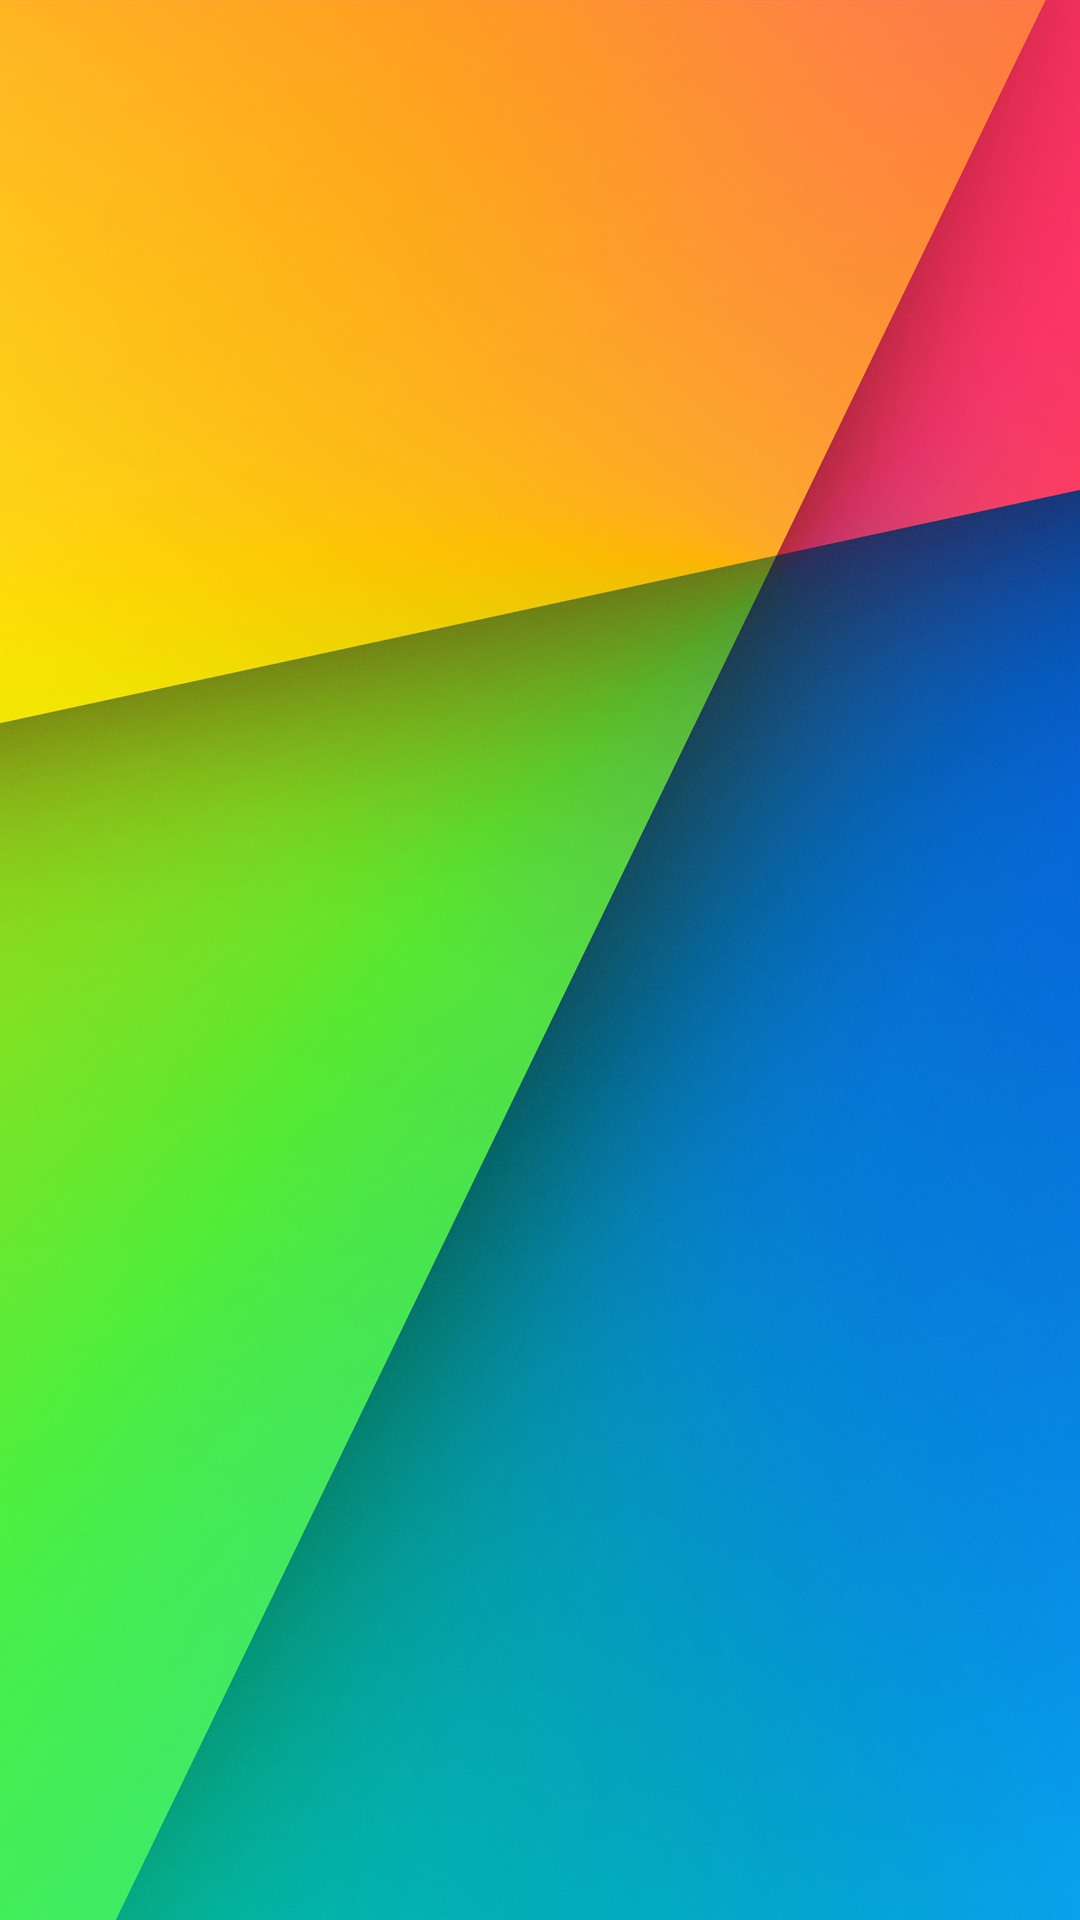 Nexus Android Wallpaper